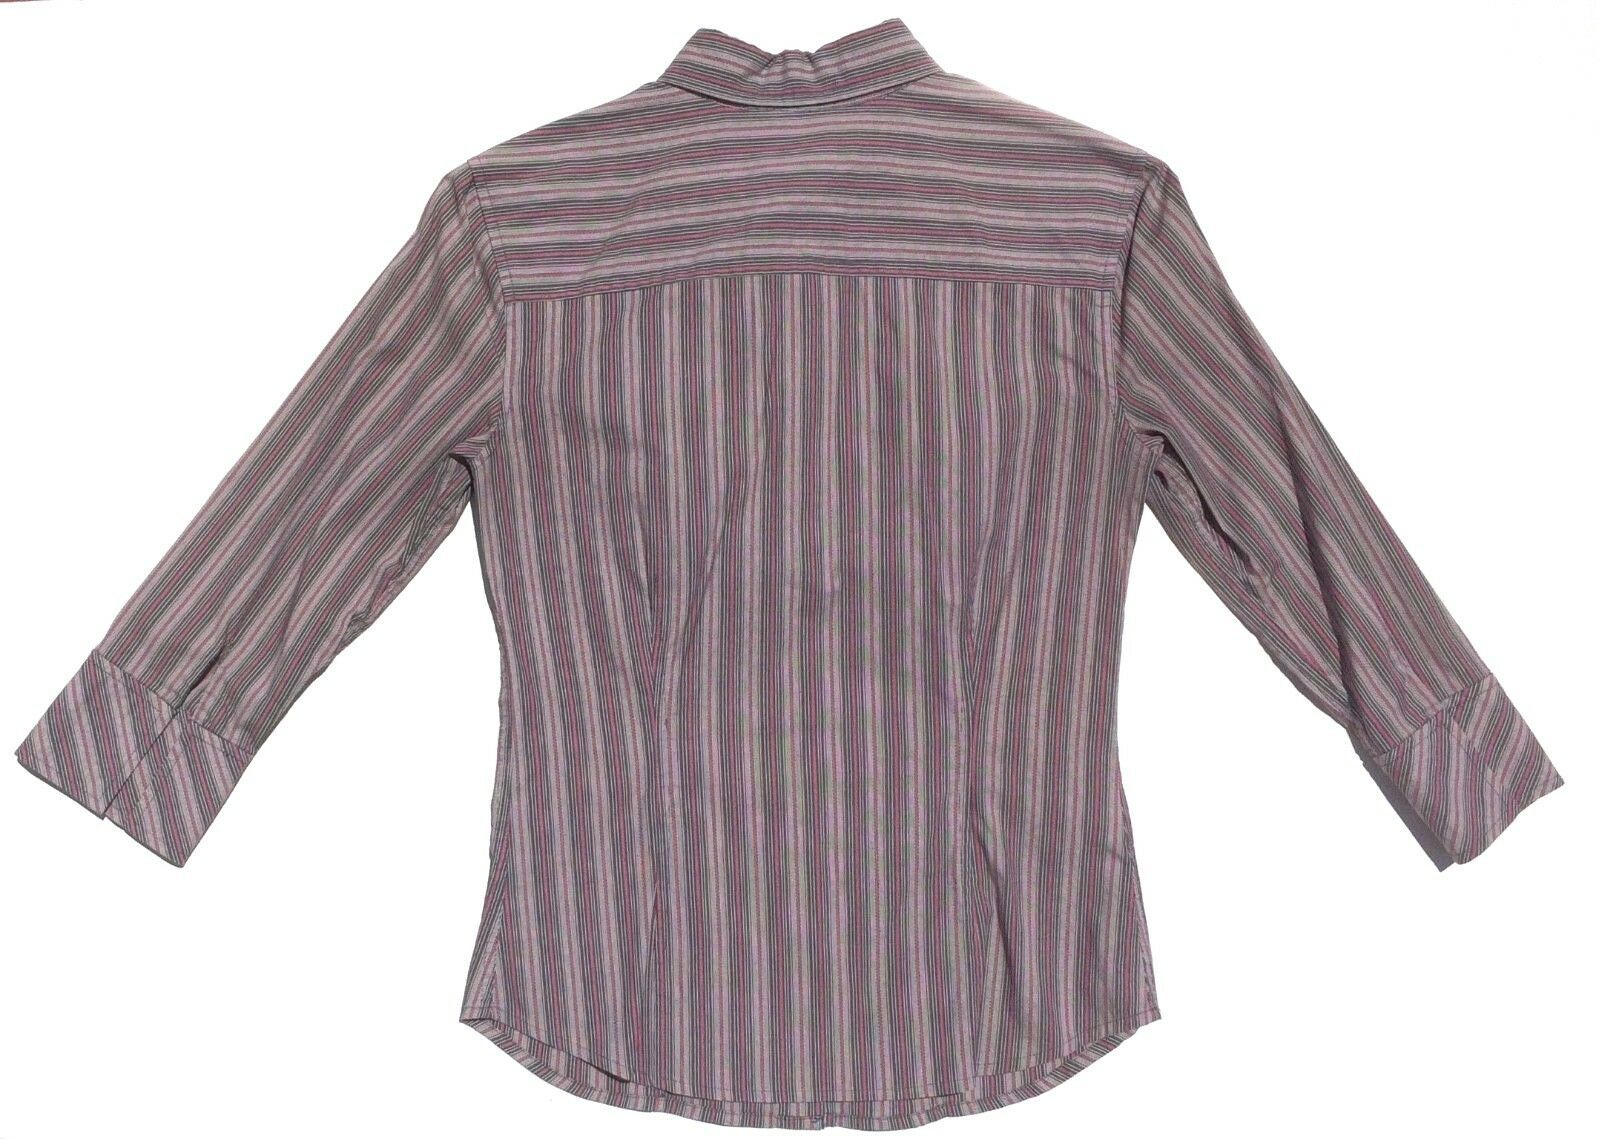 lot 2 dress shirts button 3/4 sleeve fitted stripe Old Navy size XS Express sz 2 image 5